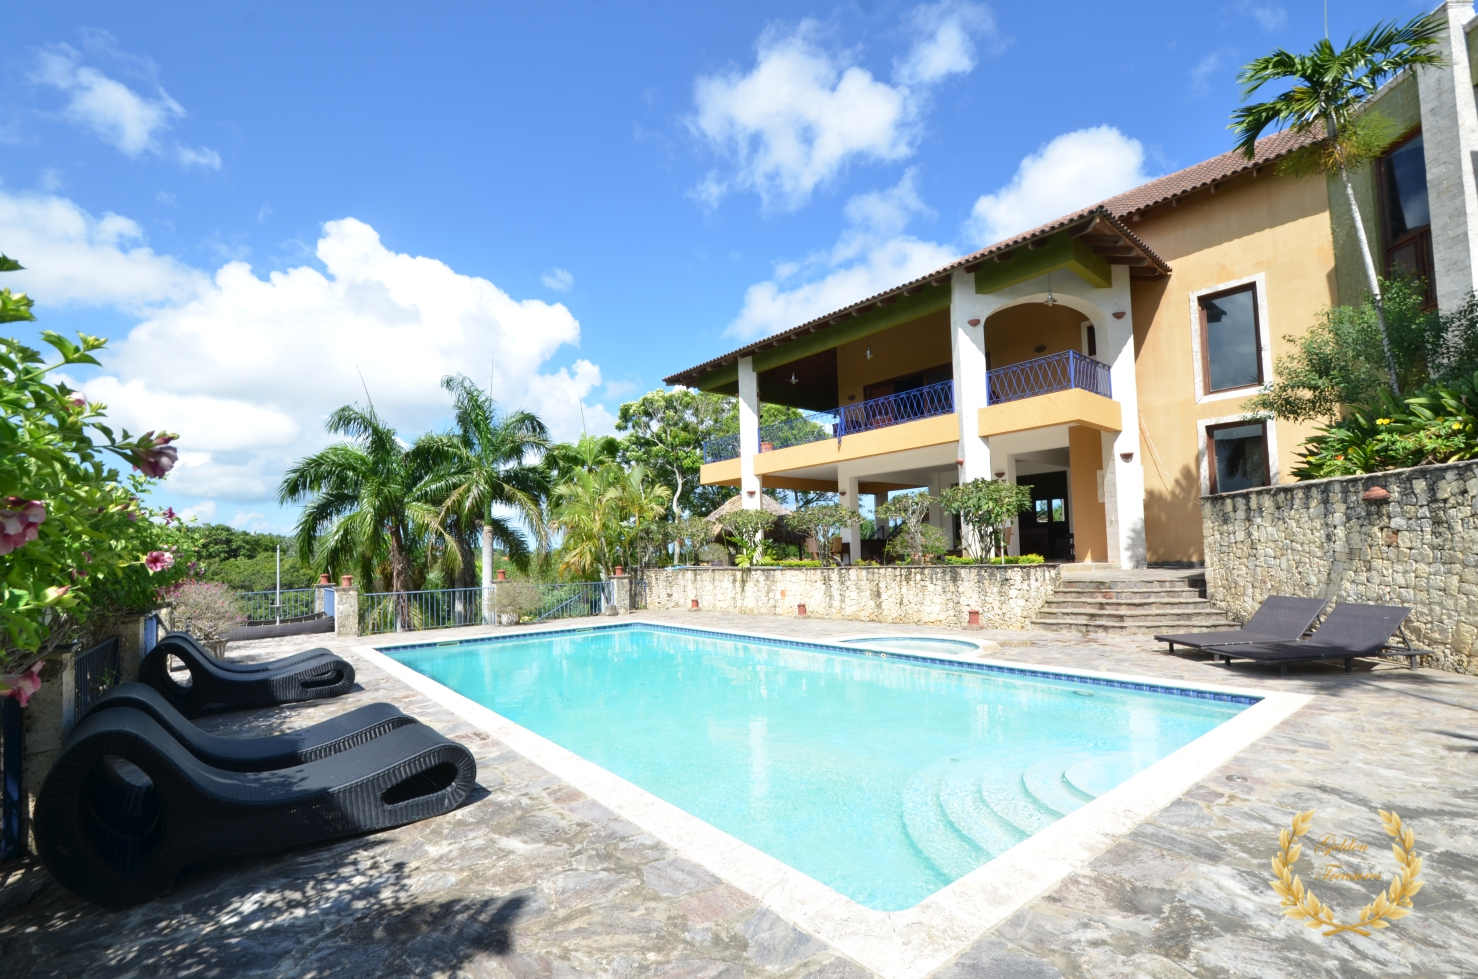 4 Bedroom Luxury Villa Rental With Landscape Views